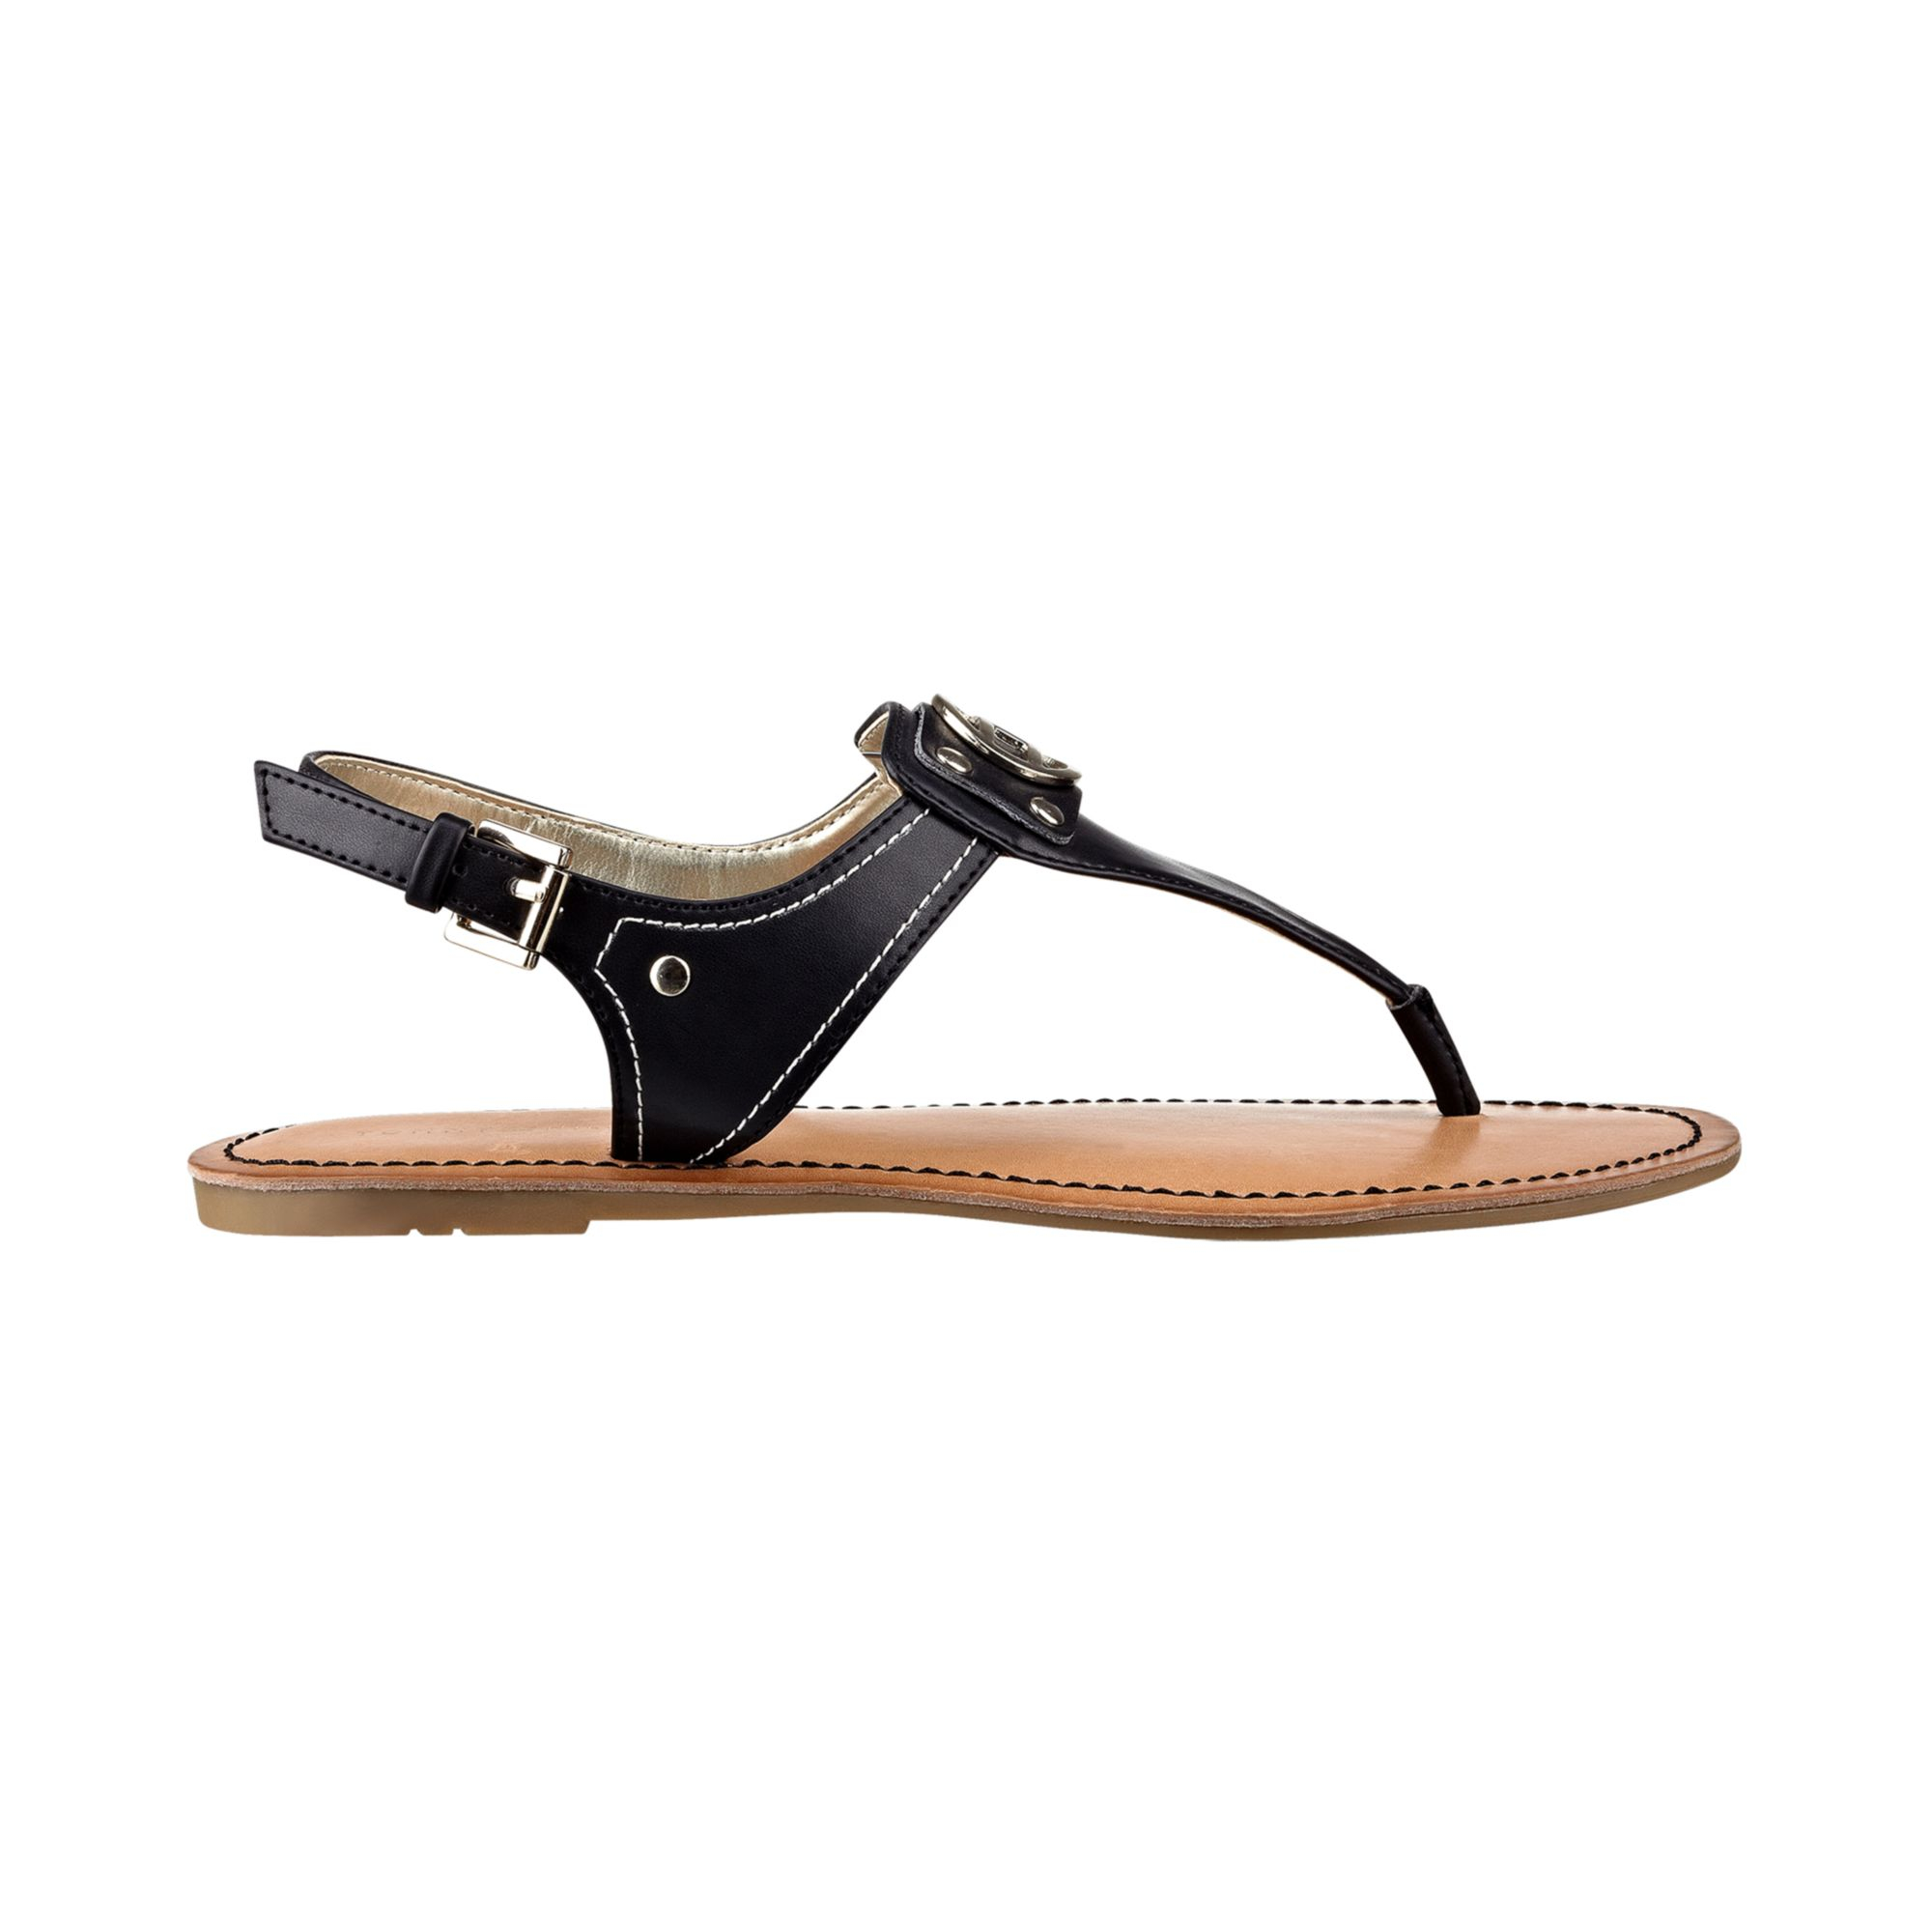 7602ce33ab7 Lyst - Tommy Hilfiger Womens Lolita Thong Sandals in Black